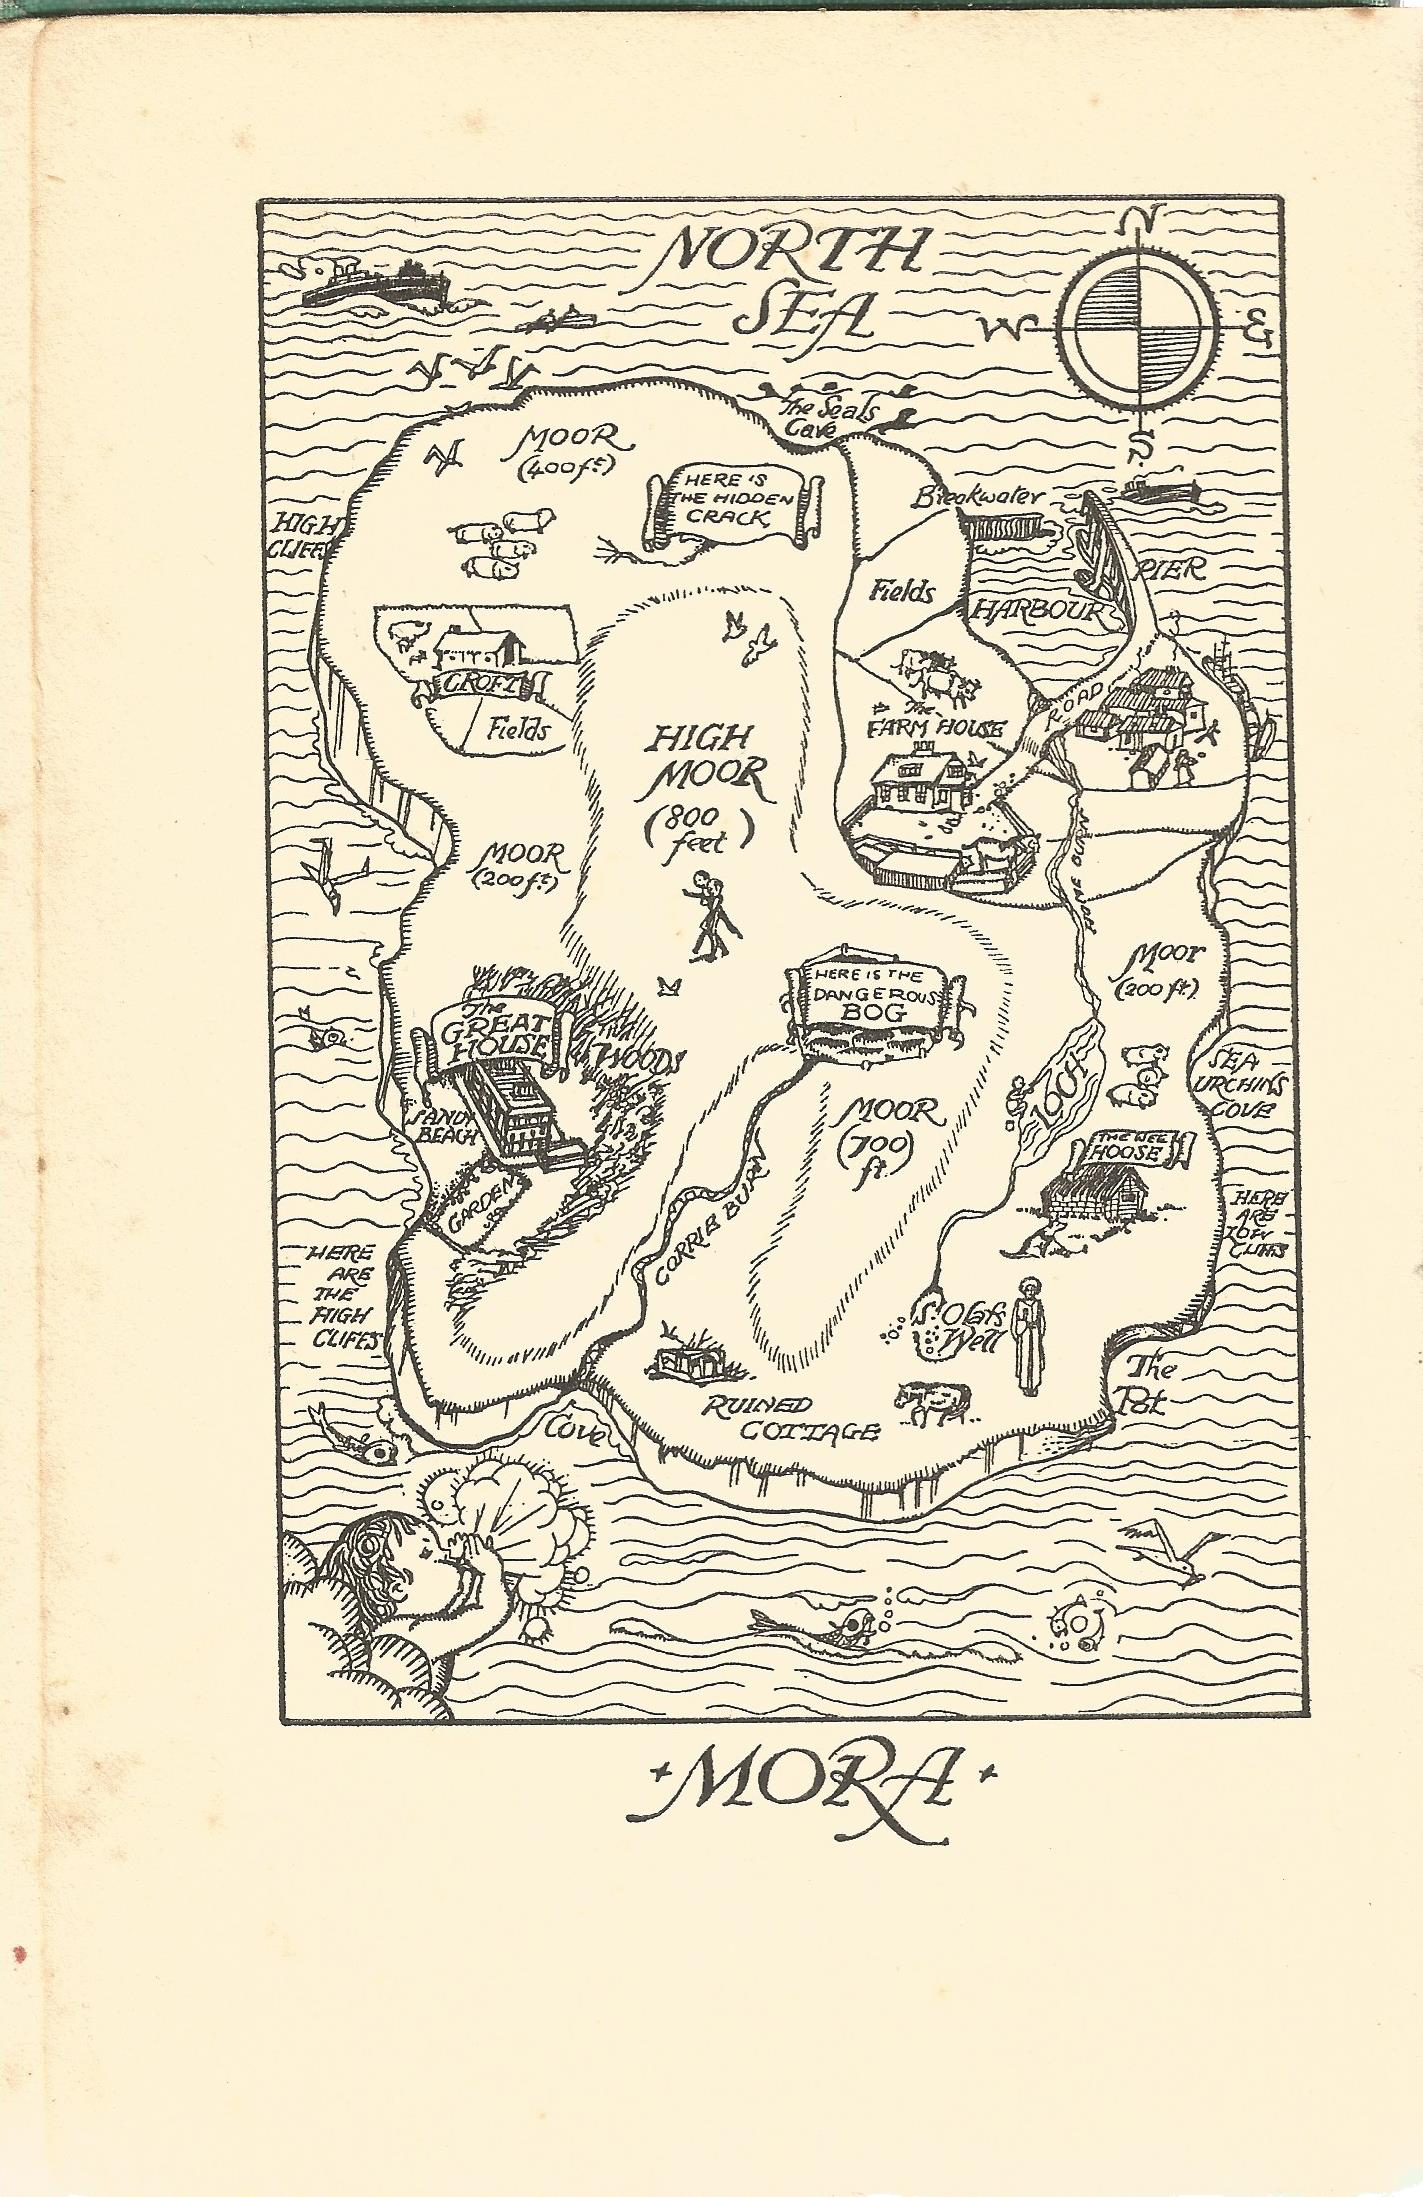 Hardback Book The Far Island A Story for Girls and Boys by M Pardoe Illustrated by R Turvey 1936 - Image 3 of 4